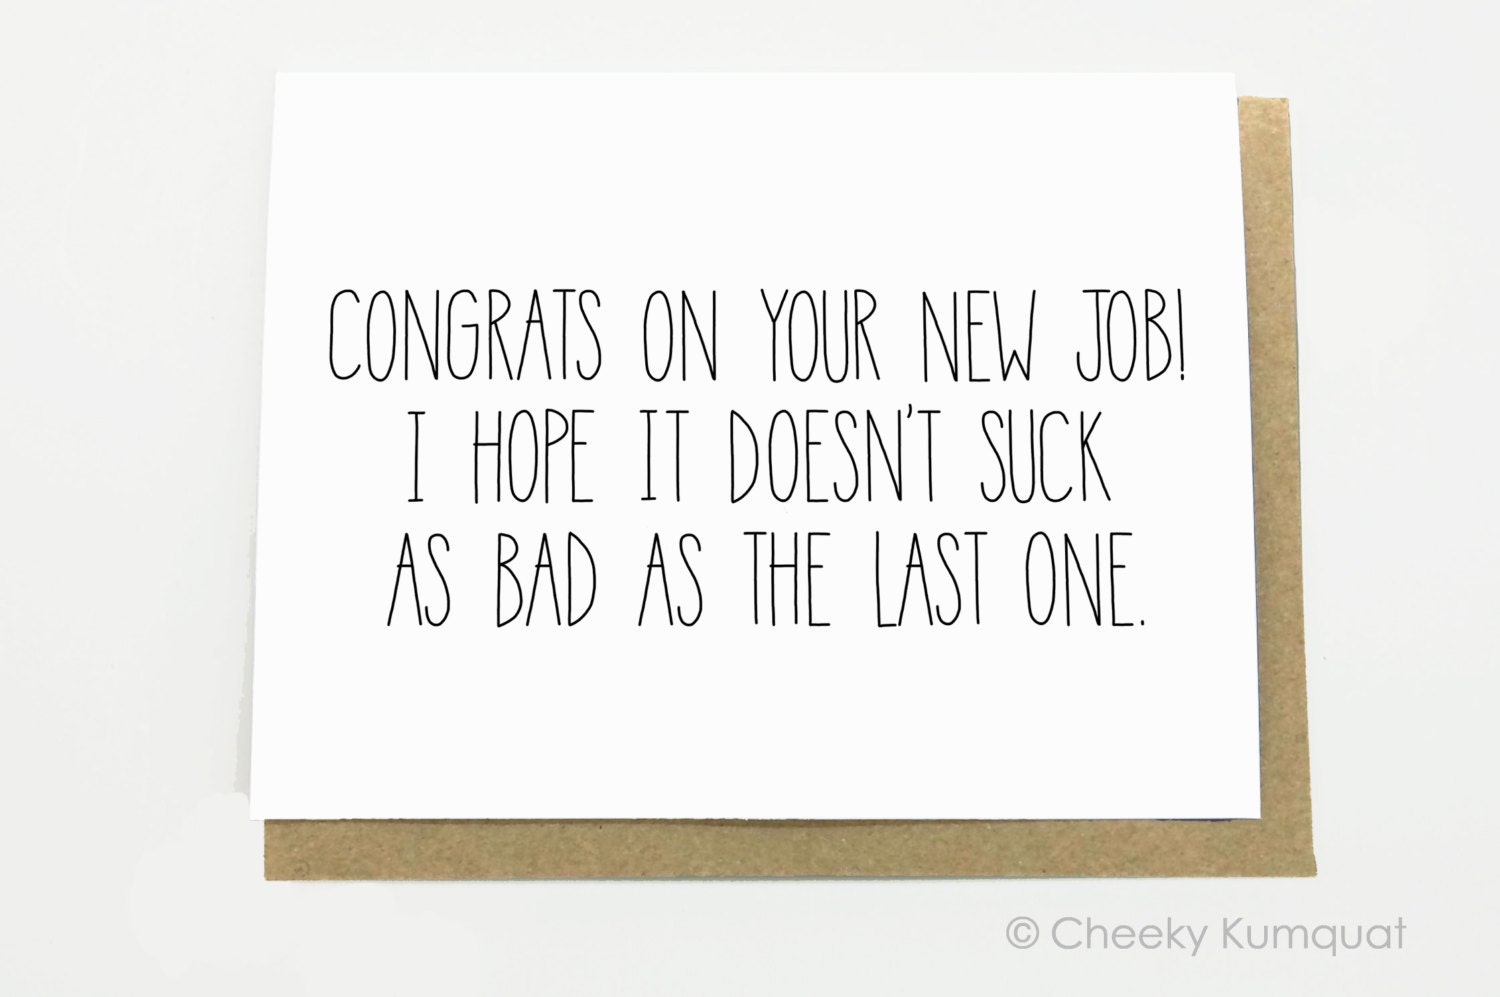 New Job Greetings Quotes Image Collections Greetings Card Design